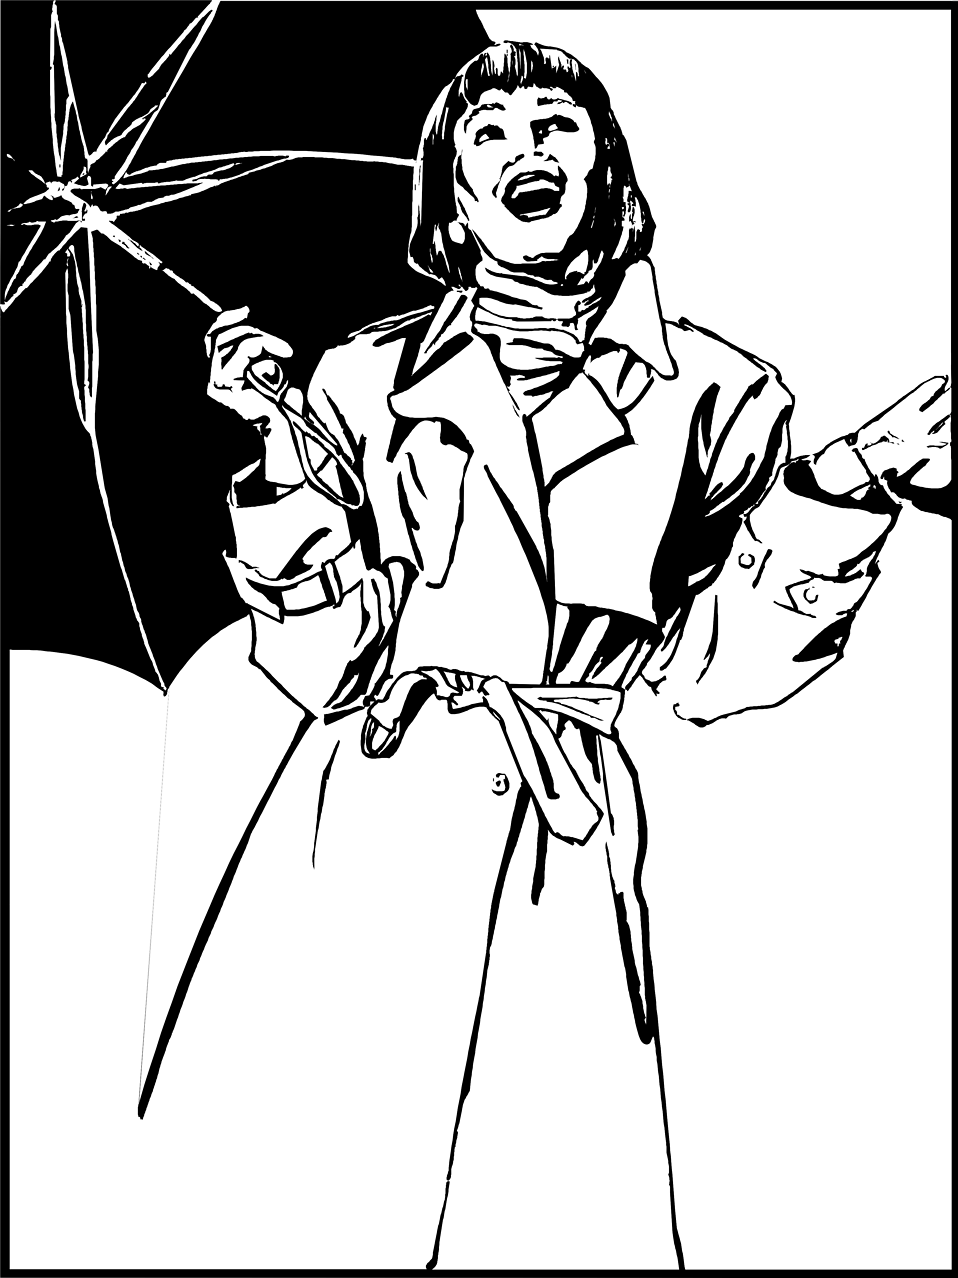 Illustration of a woman with a black umbrella : Free Stock Photo